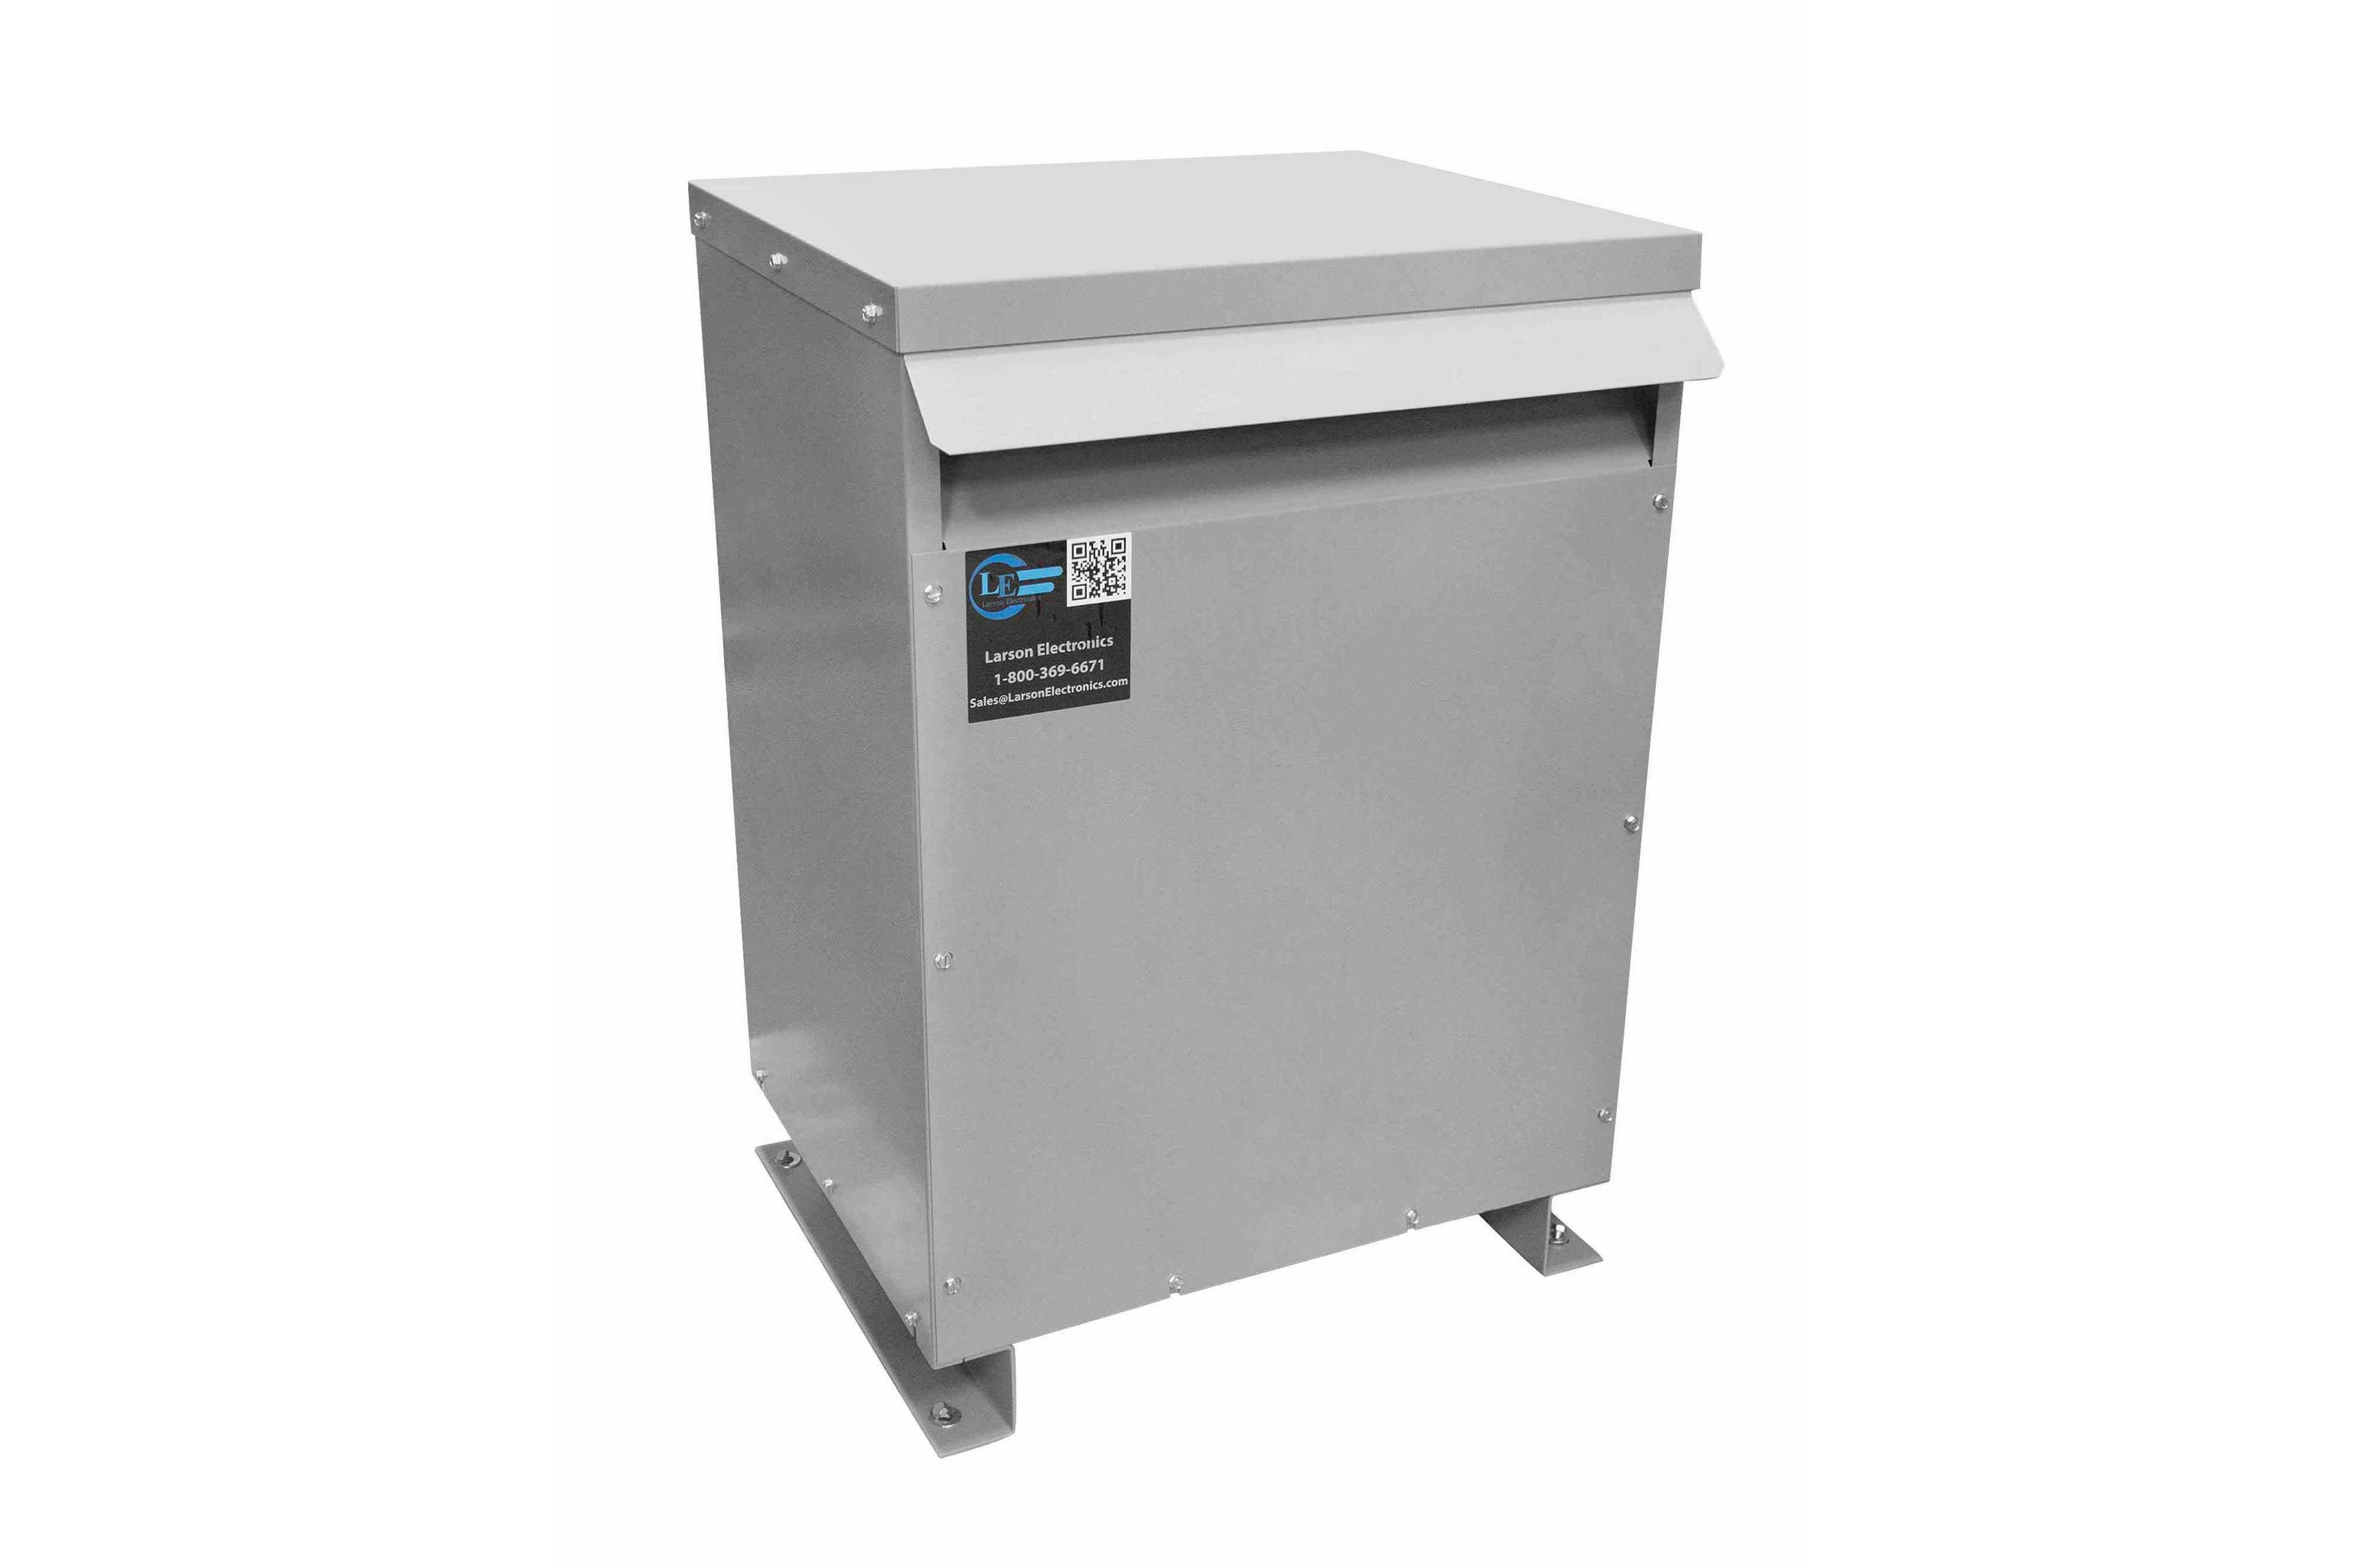 175 kVA 3PH Isolation Transformer, 460V Wye Primary, 600Y/347 Wye-N Secondary, N3R, Ventilated, 60 Hz